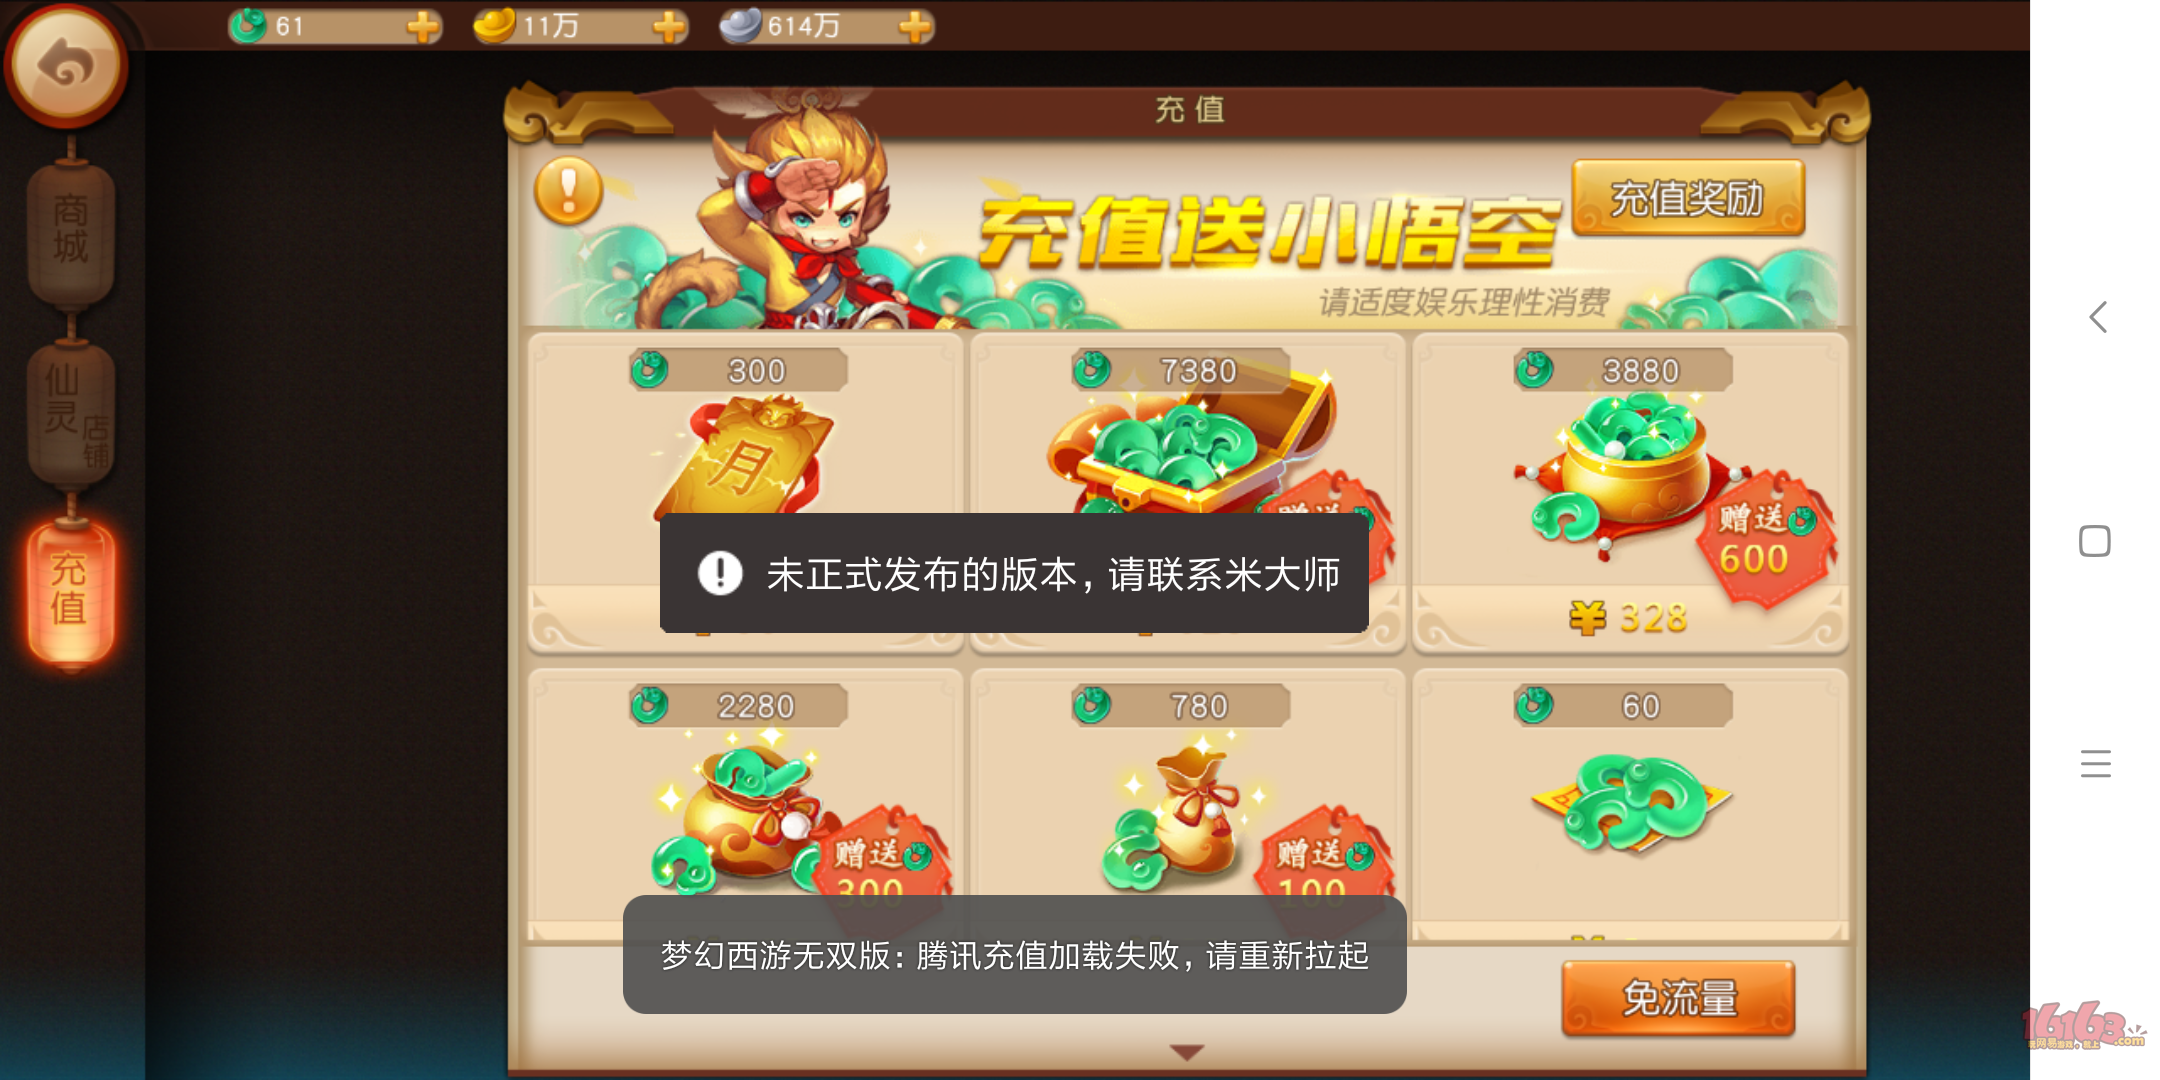 Screenshot_2018-05-09-19-47-03-559_com.tencent.tmgp.mhws.zqb.png